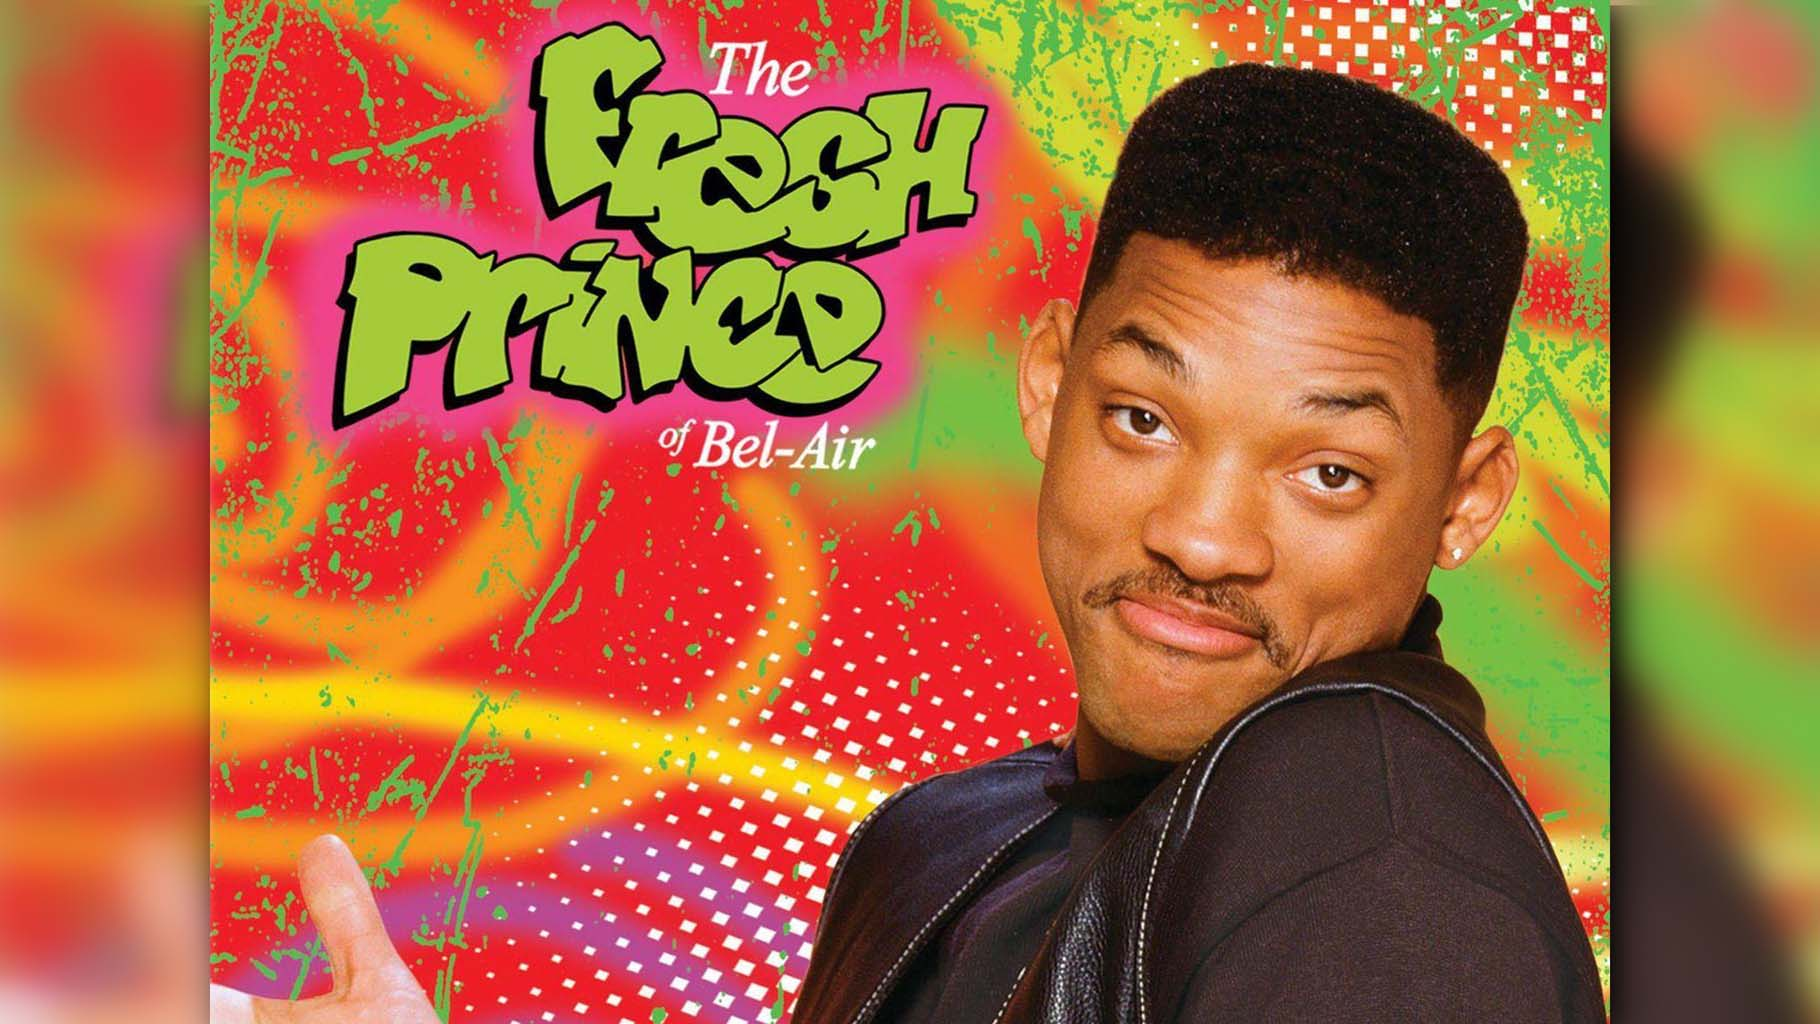 Black, Netflix, Will smith, The fresh prince of bel-air